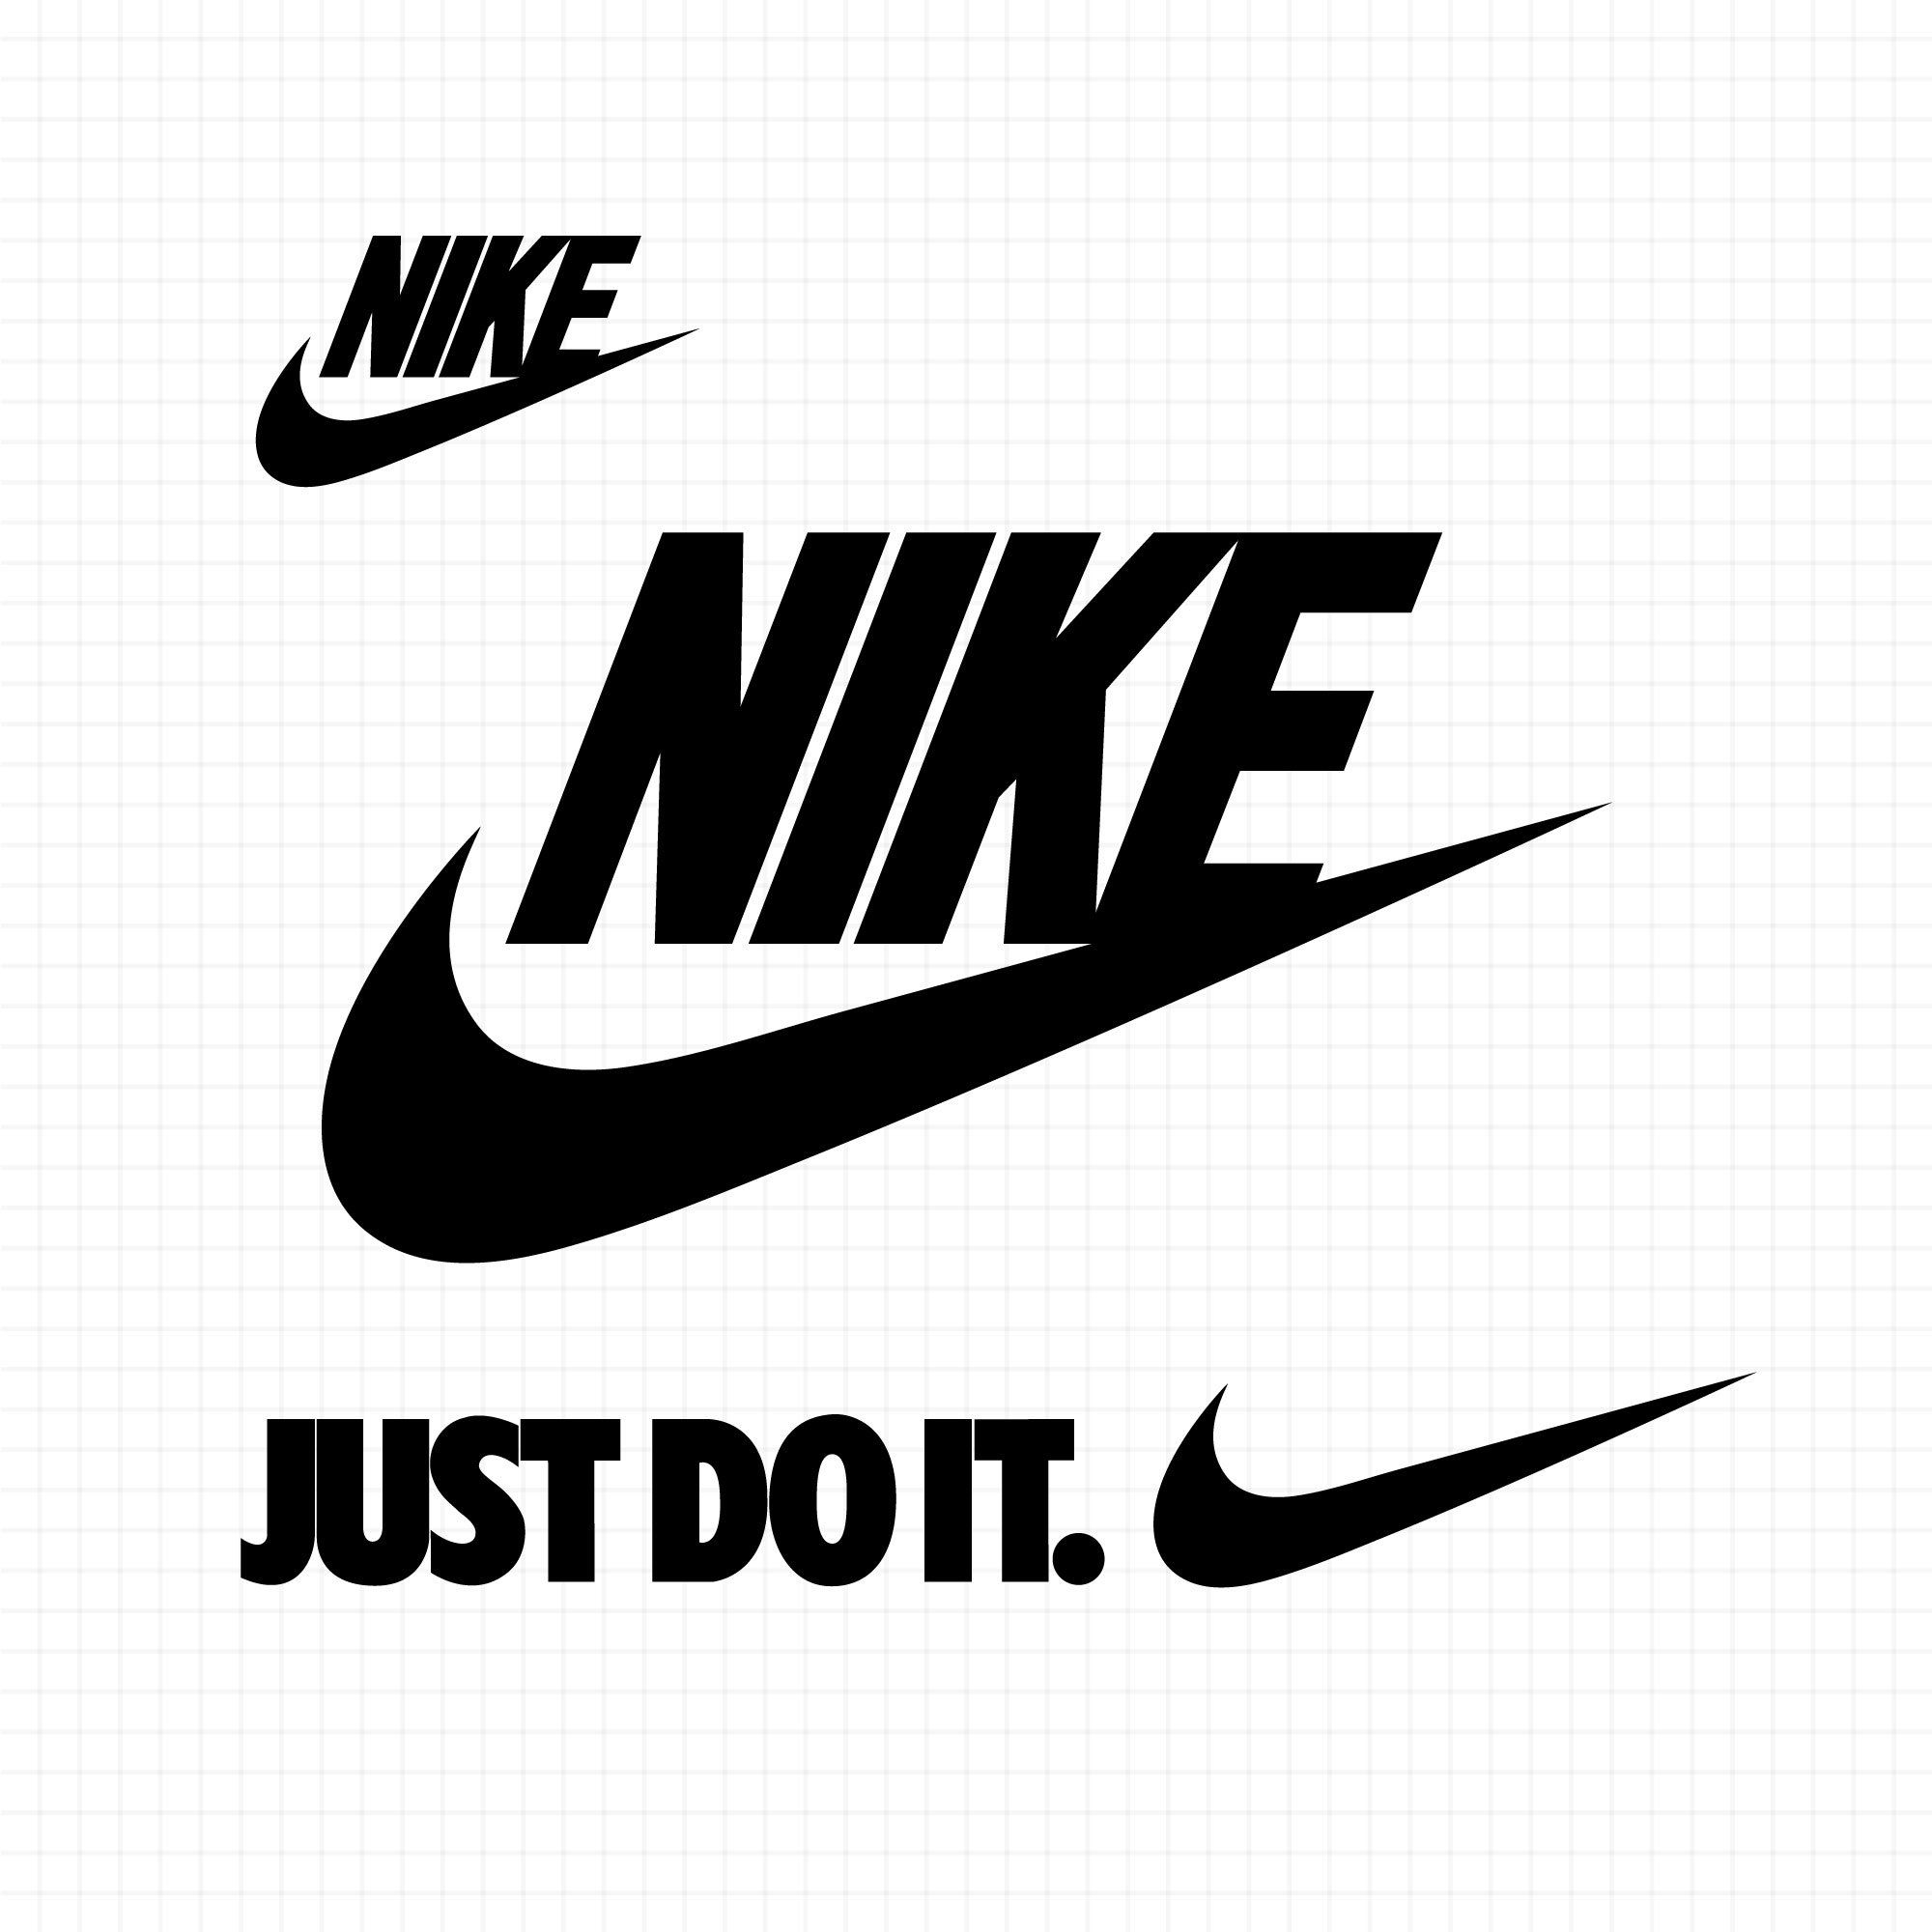 Nike Logo SVG Just Do It Logo SVG Nike SVG Just do it svg